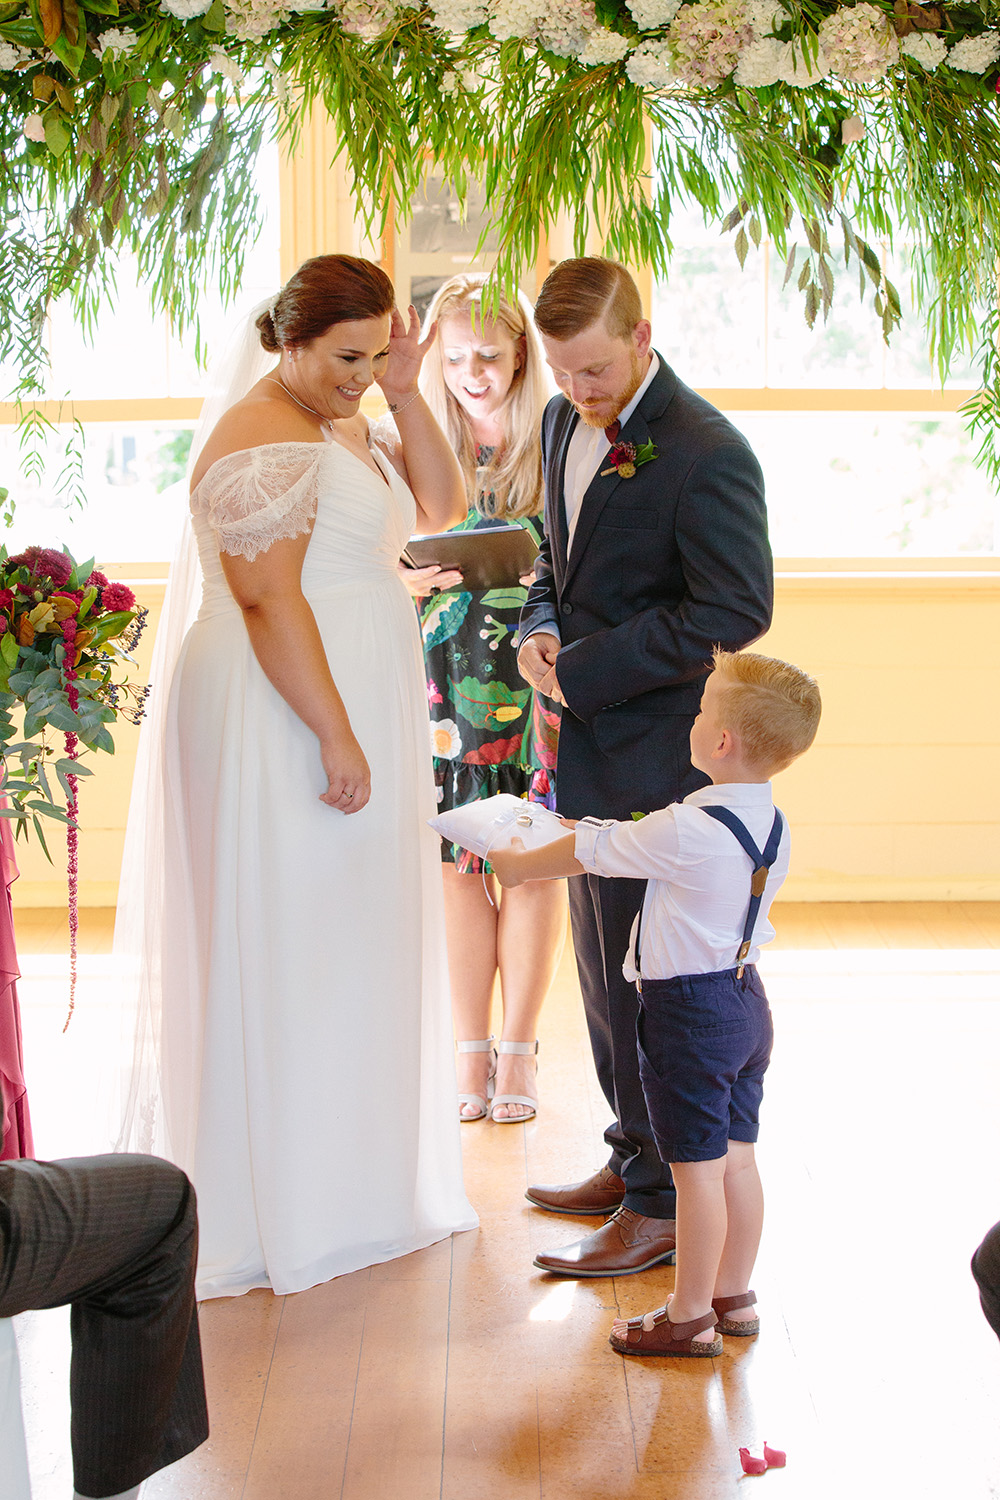 KL_Skiiny-Love-Wedding.jpg